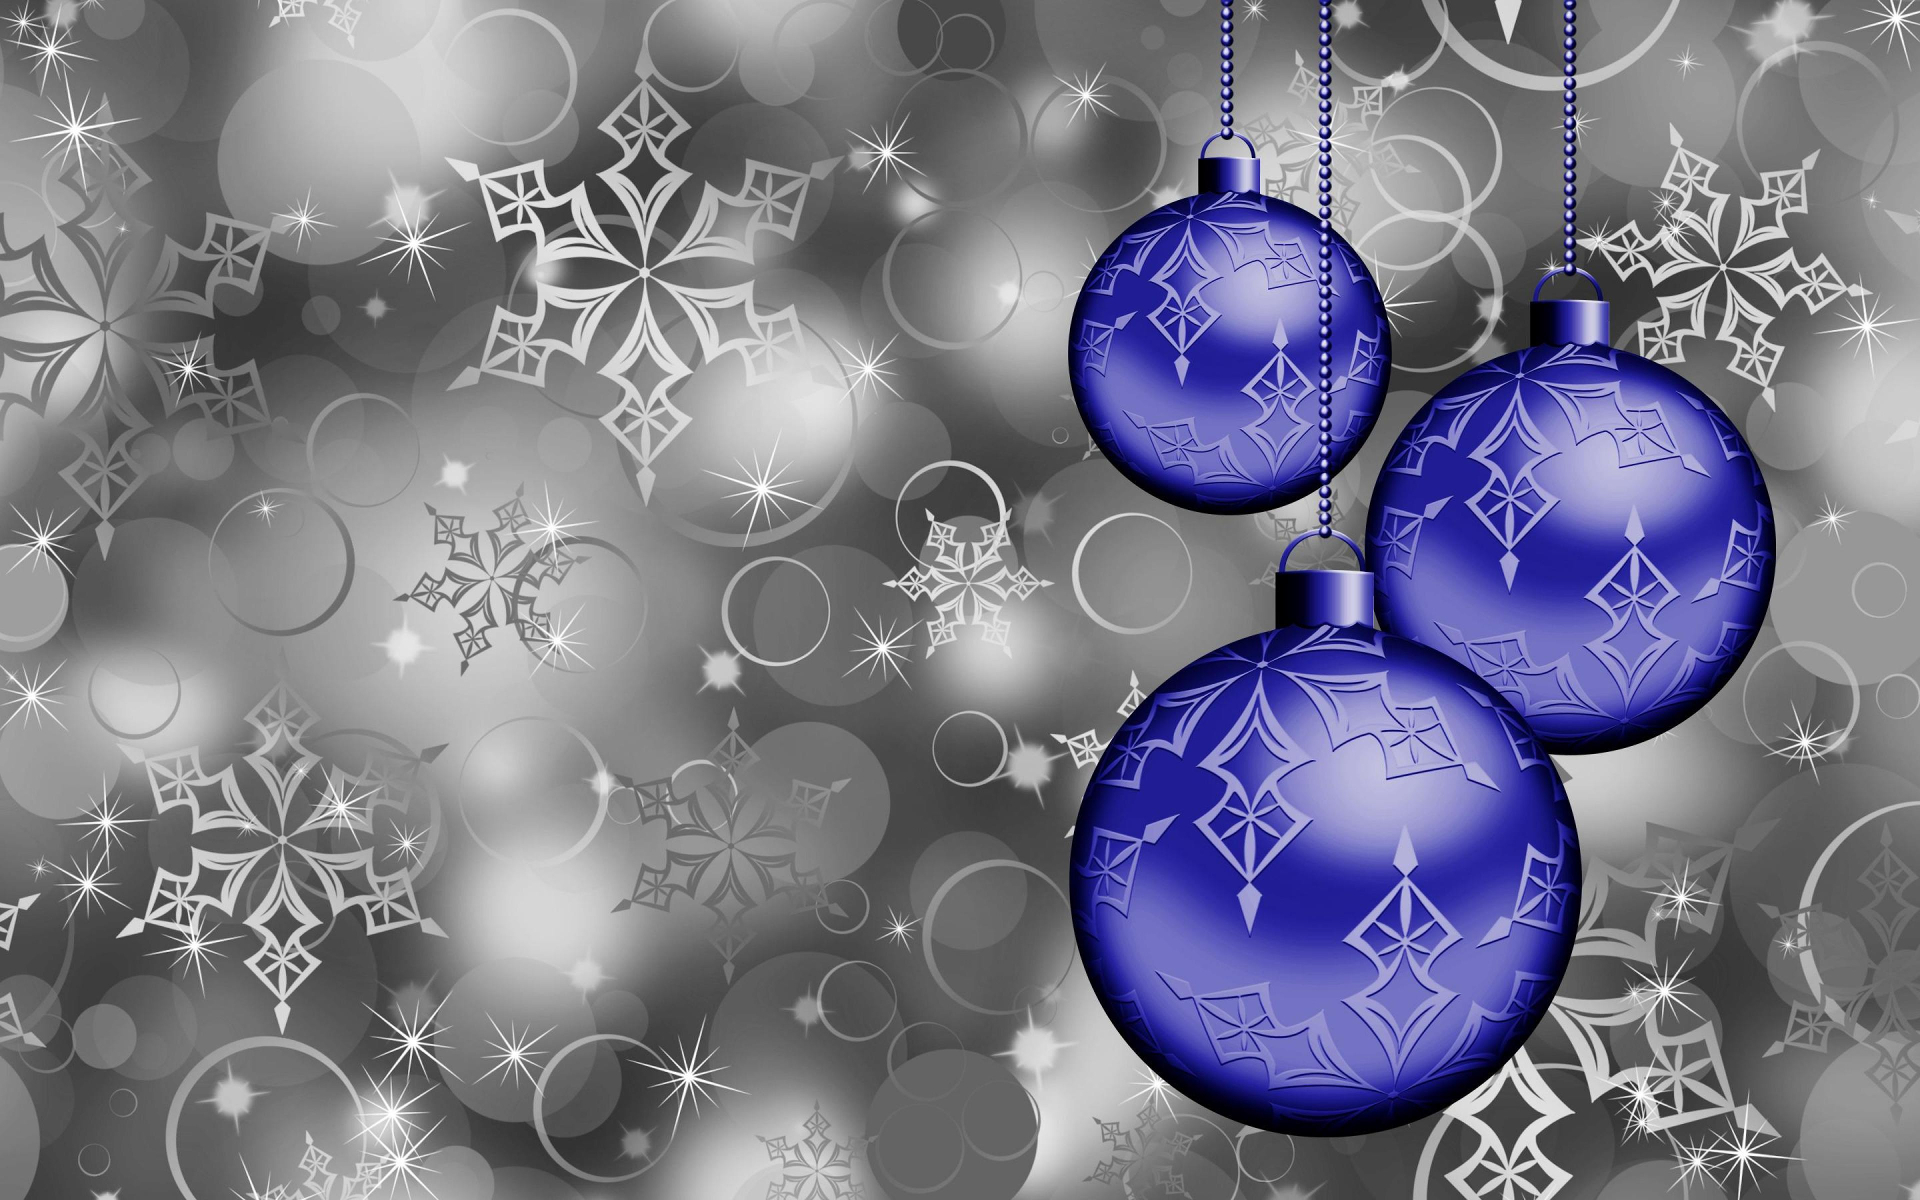 Blue Christmas Ornaments Full HD Wallpaper And Background Image